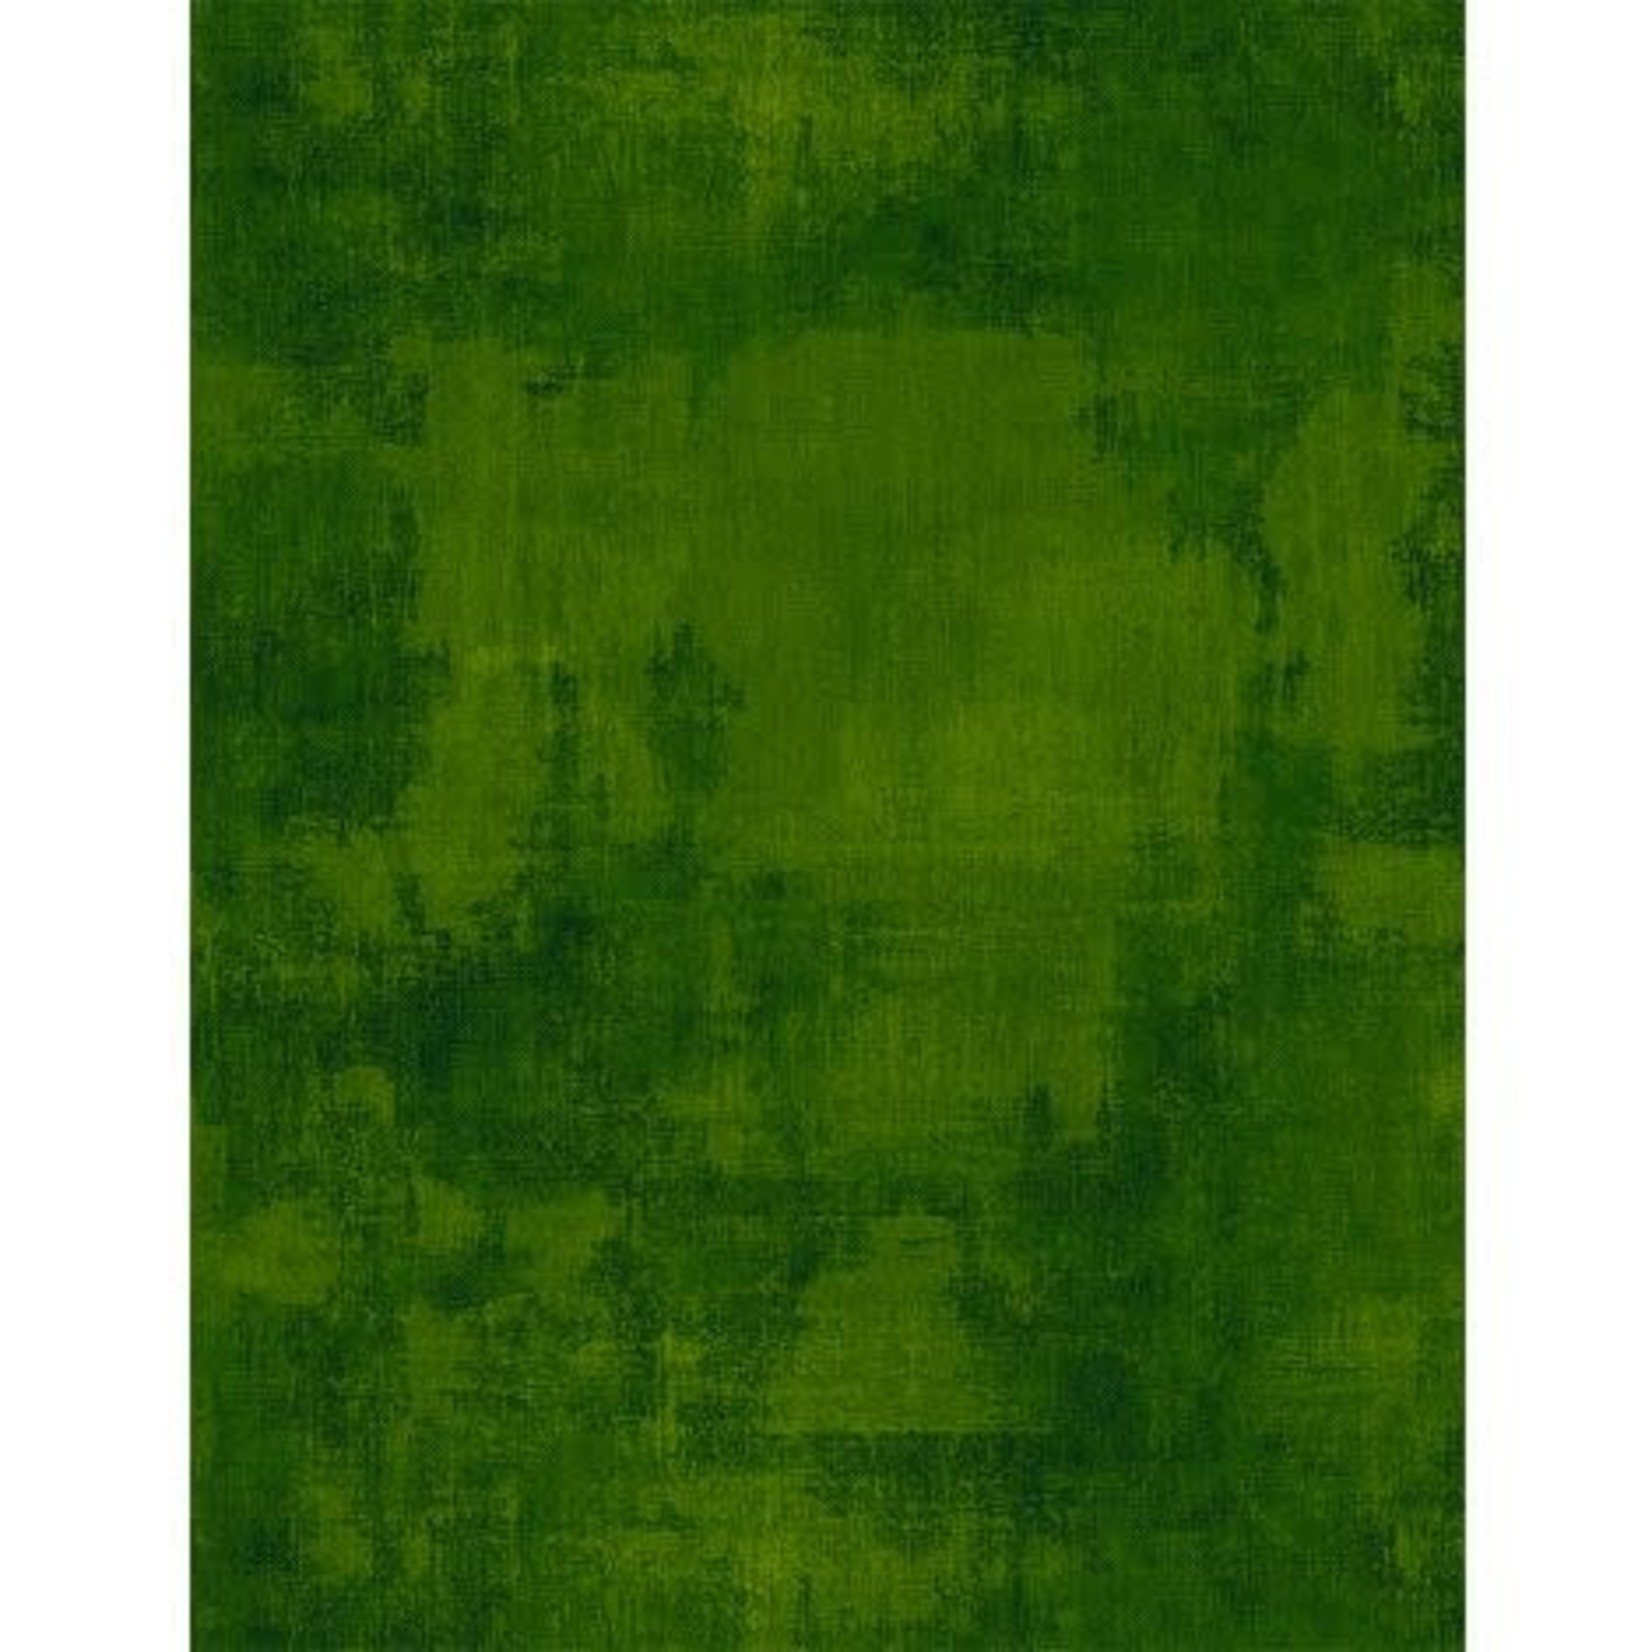 WILMINGTON PRINTS Essentials Flannel, Forest Green - Per Cm or $20/m